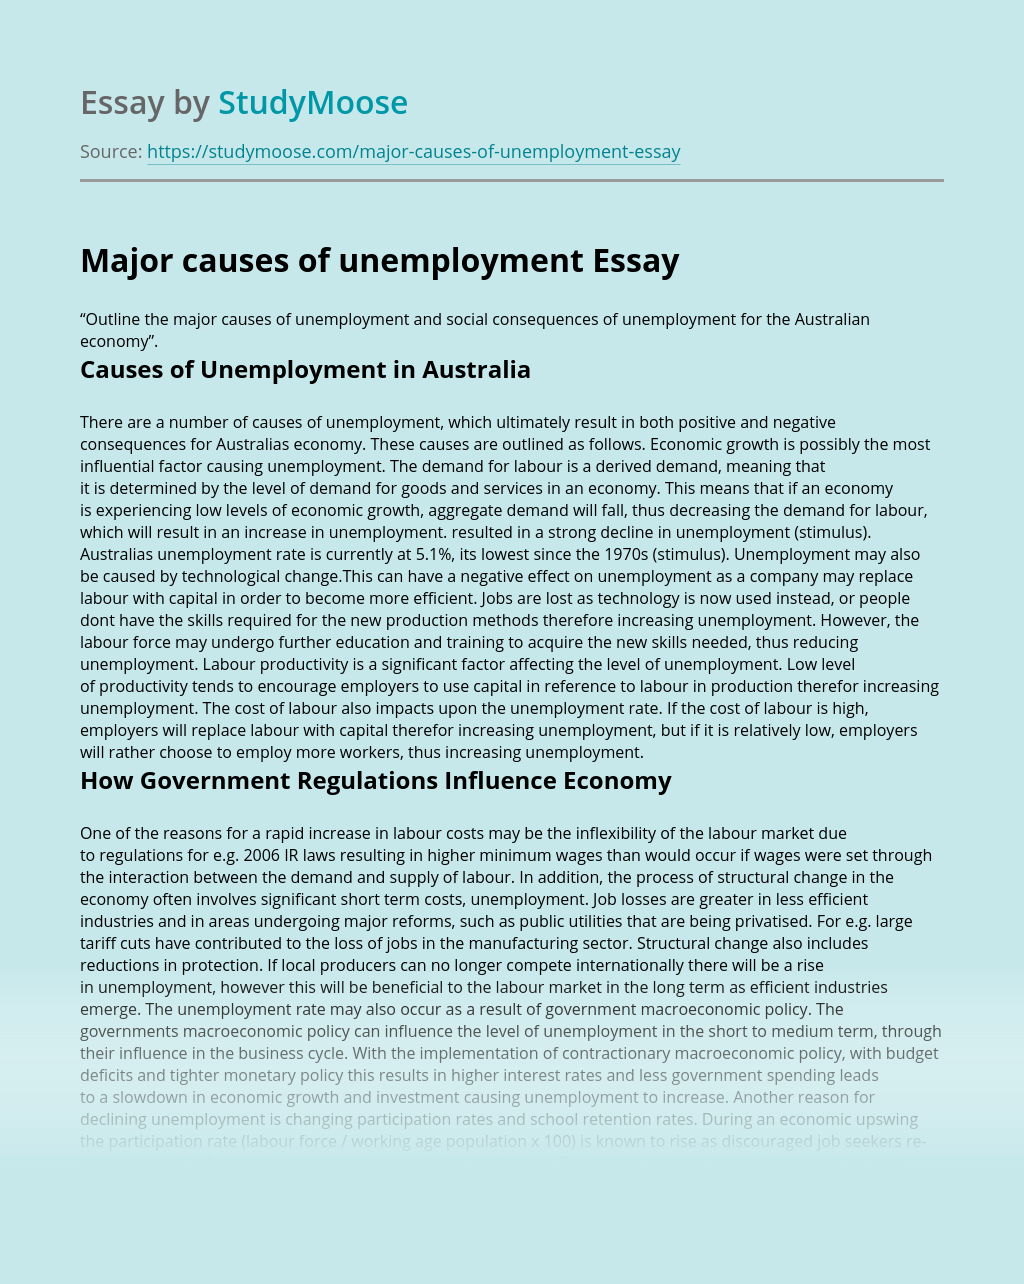 Major causes of unemployment